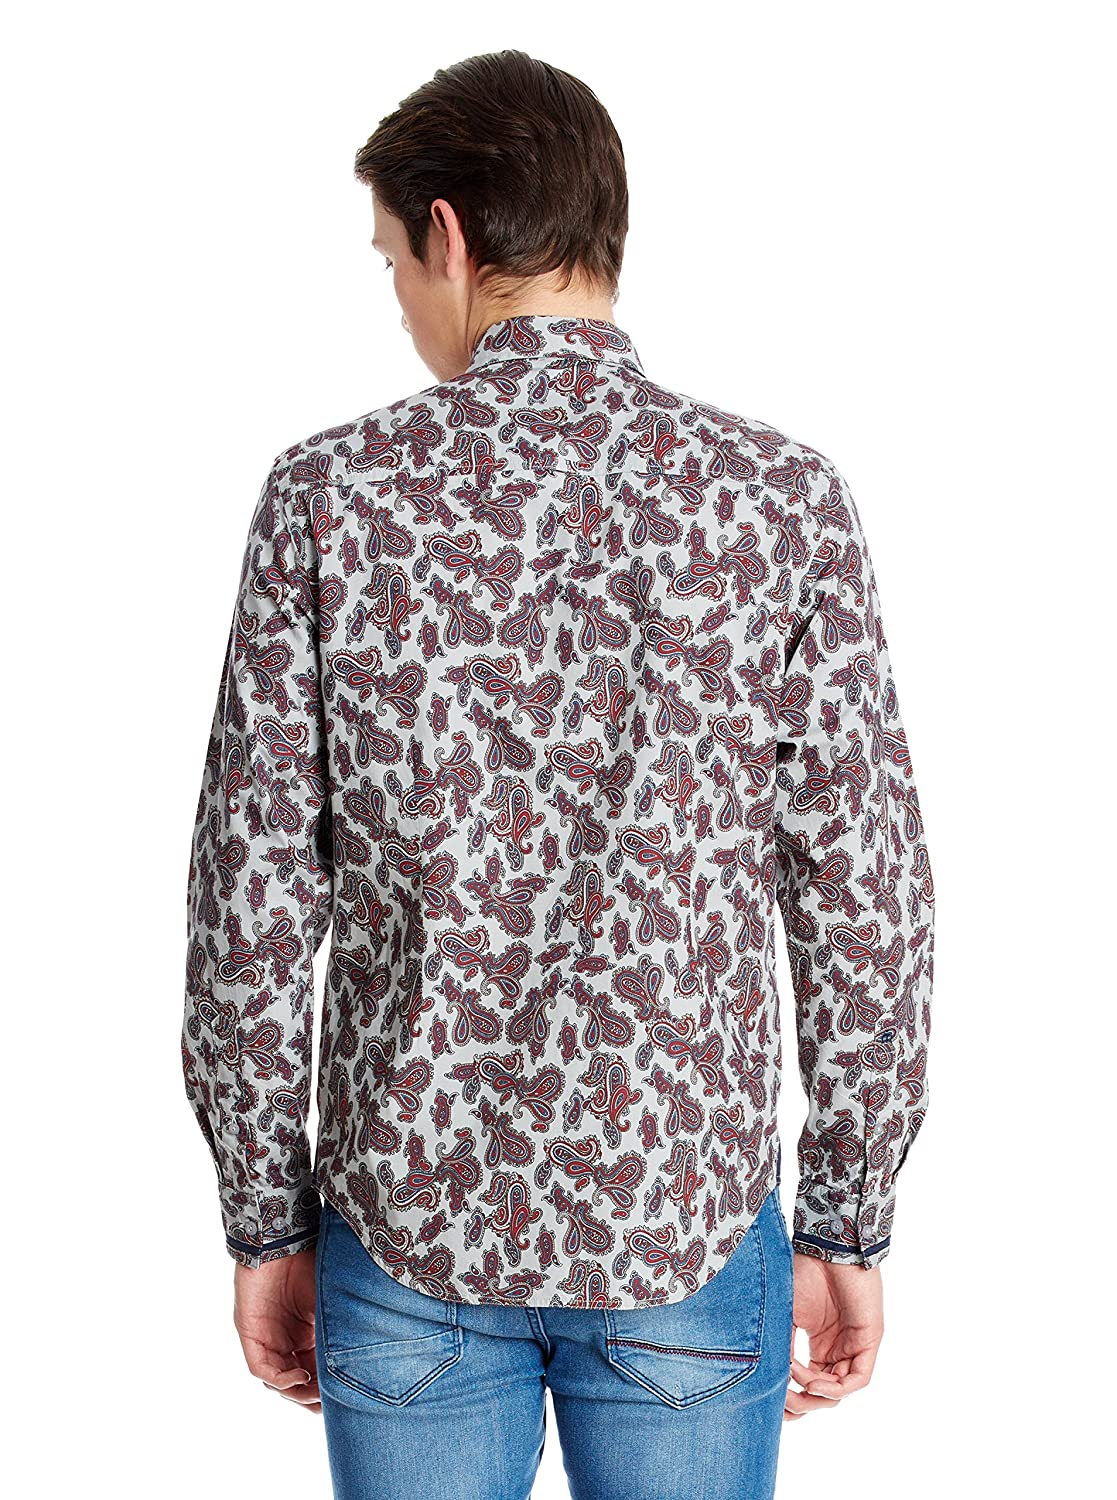 Merc of London Herren Smoking Hemd Hull, Shirt Paisley: Amazon.de:  Bekleidung